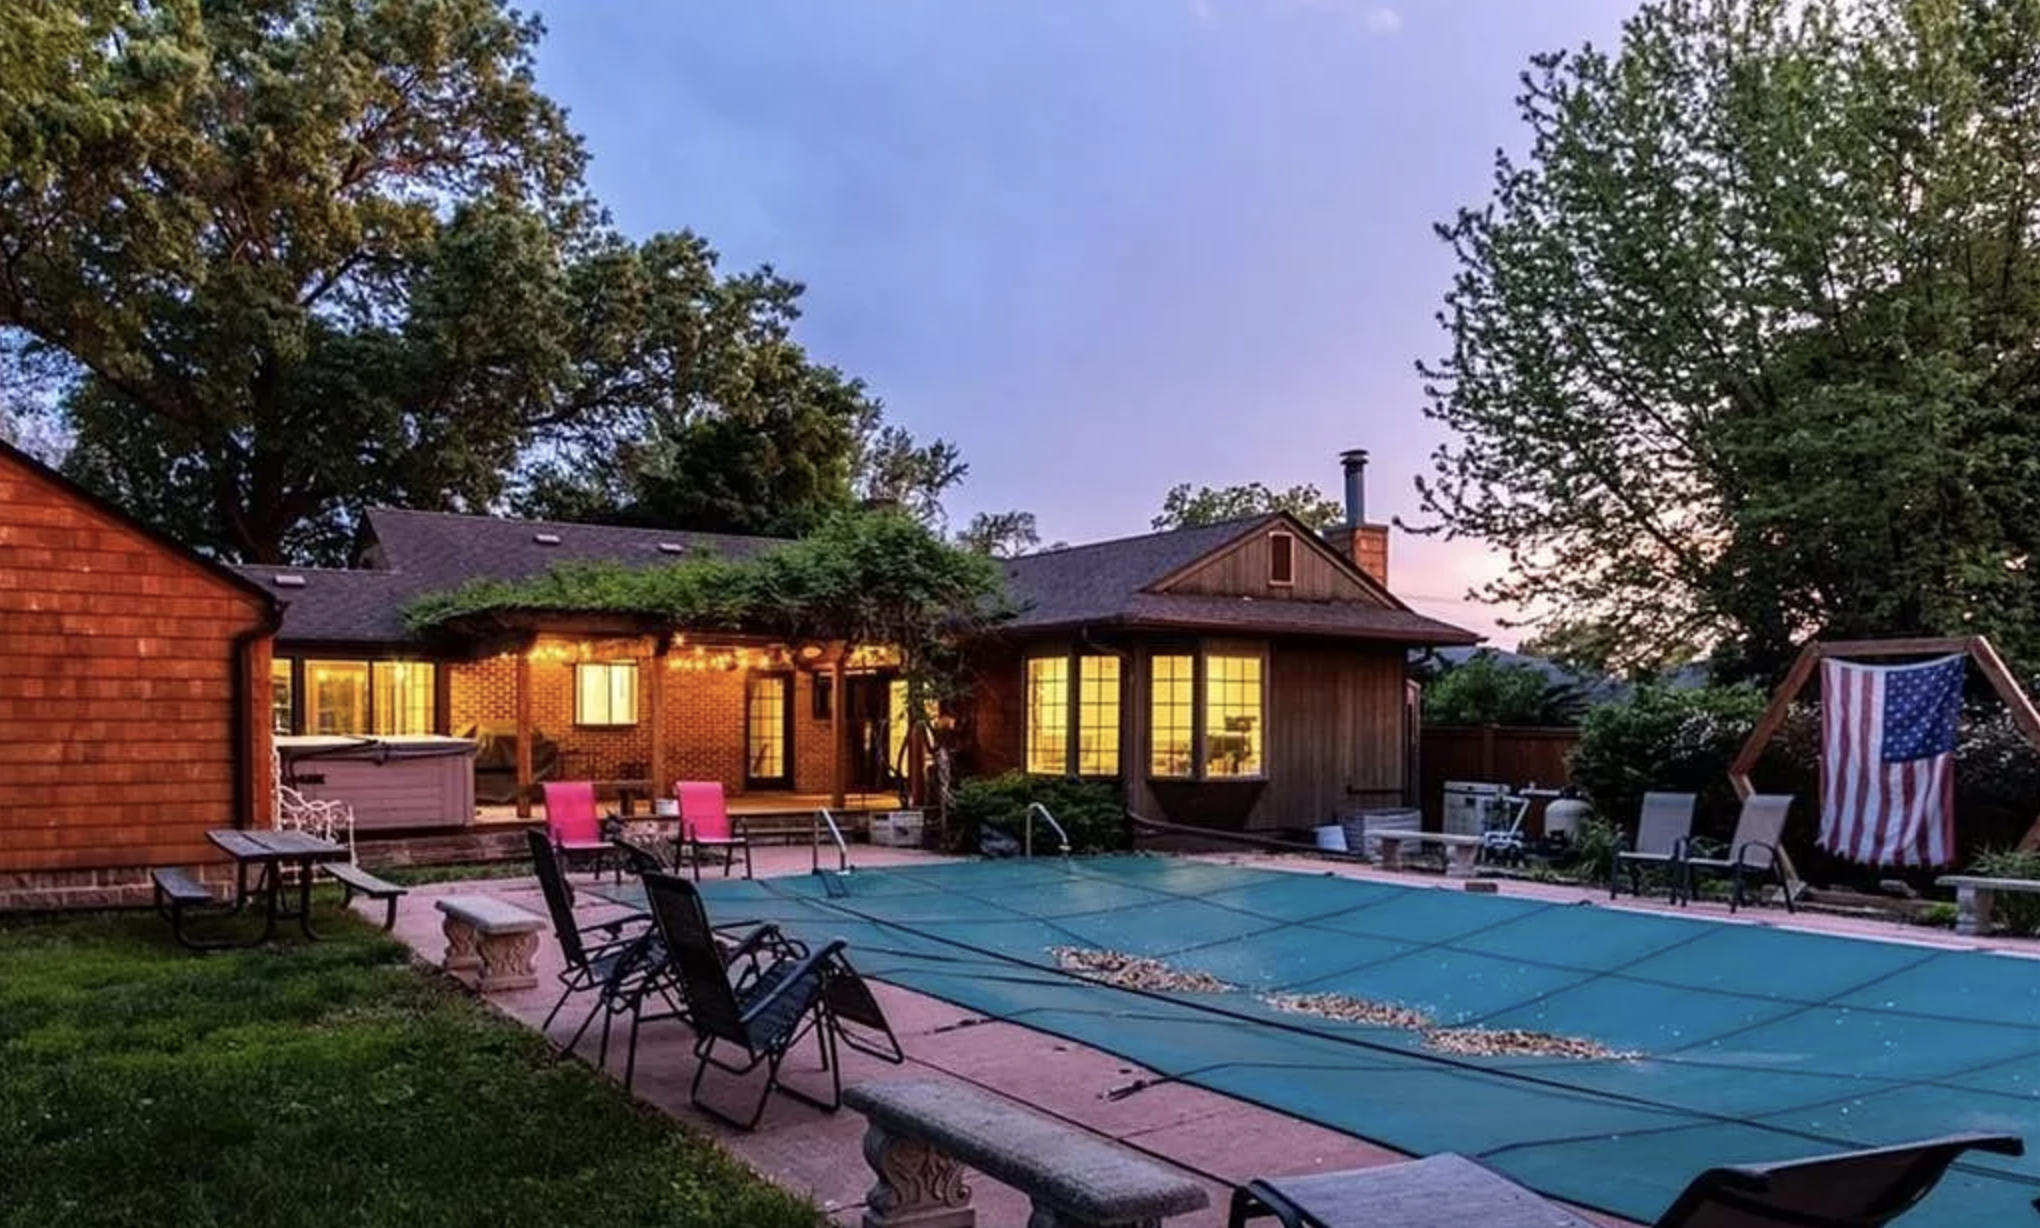 A pool outside a home for sale in Iowa, during sunset.